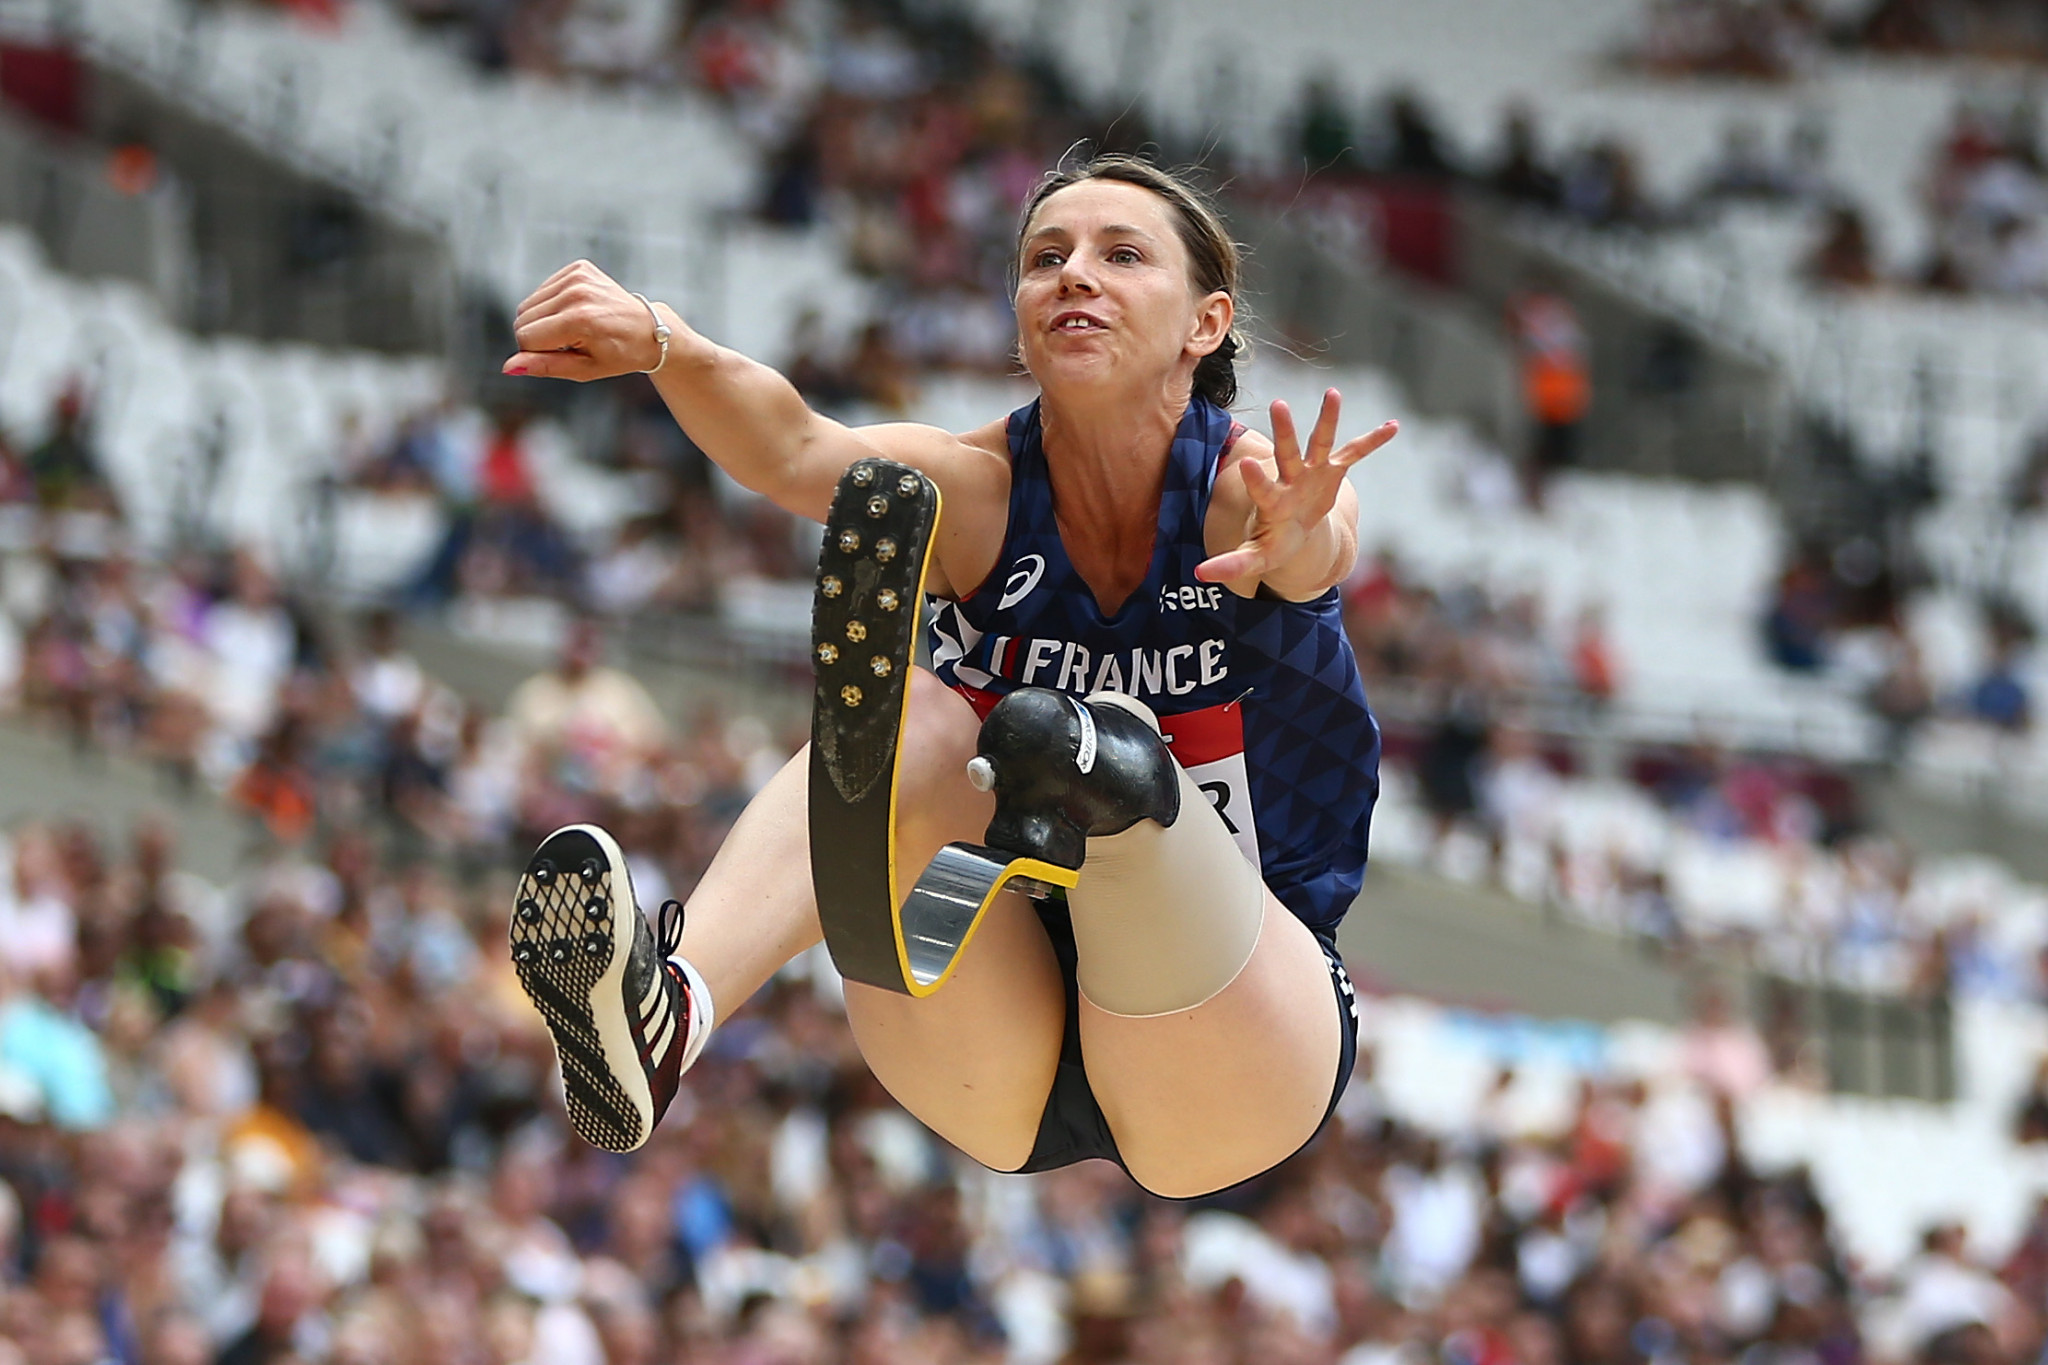 Marie-Amelie Le Fur of France set a world record of 6.01m in the T64 long jump in Berlin ©Getty Images